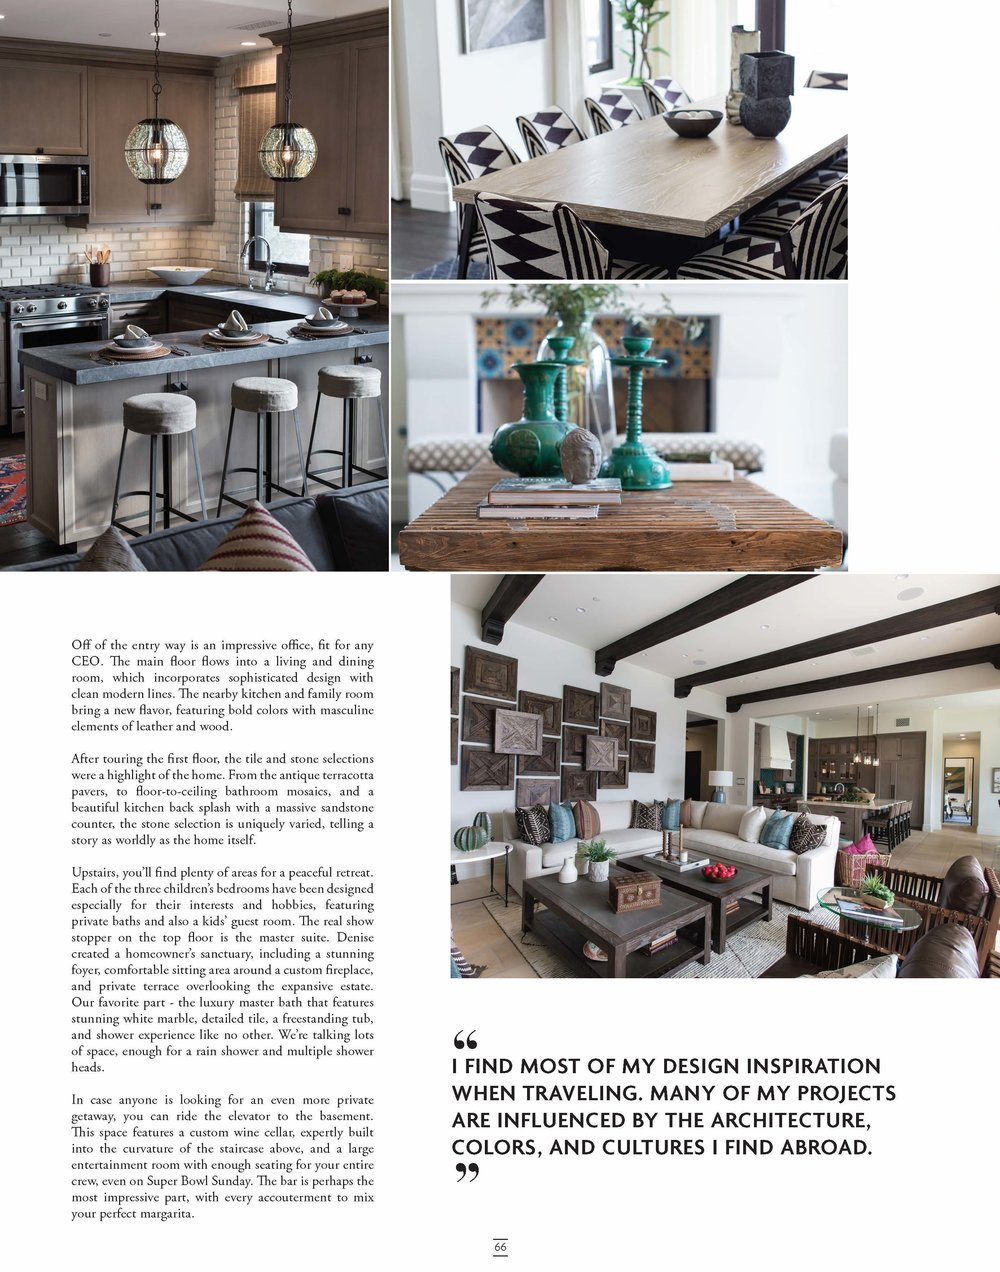 Denise Morrison Interiors Press Feature in Nobleman Magazine Fall 2017 for Hilltop Hacienda 3.jpg